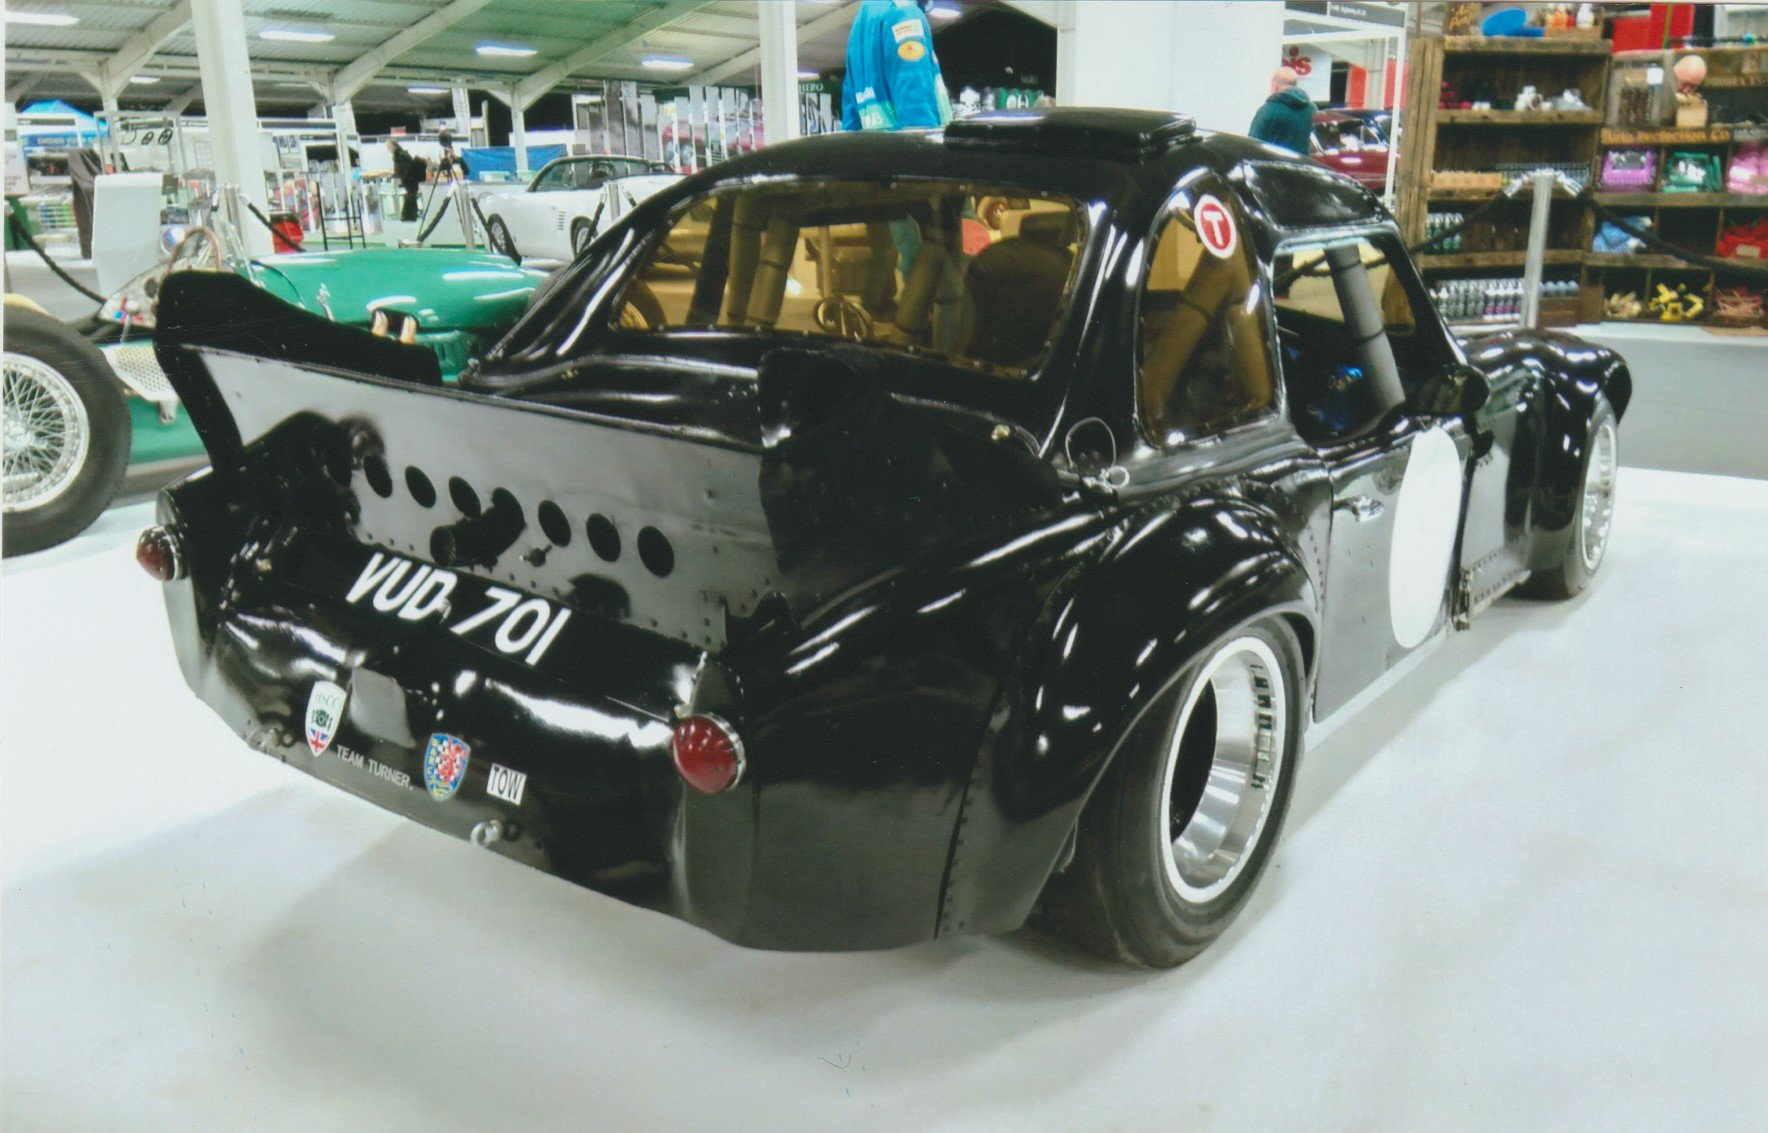 1963 Historic Turner Ford Mk11 Sports Race Car VUD 701 Cosworth For Sale (picture 2 of 6)